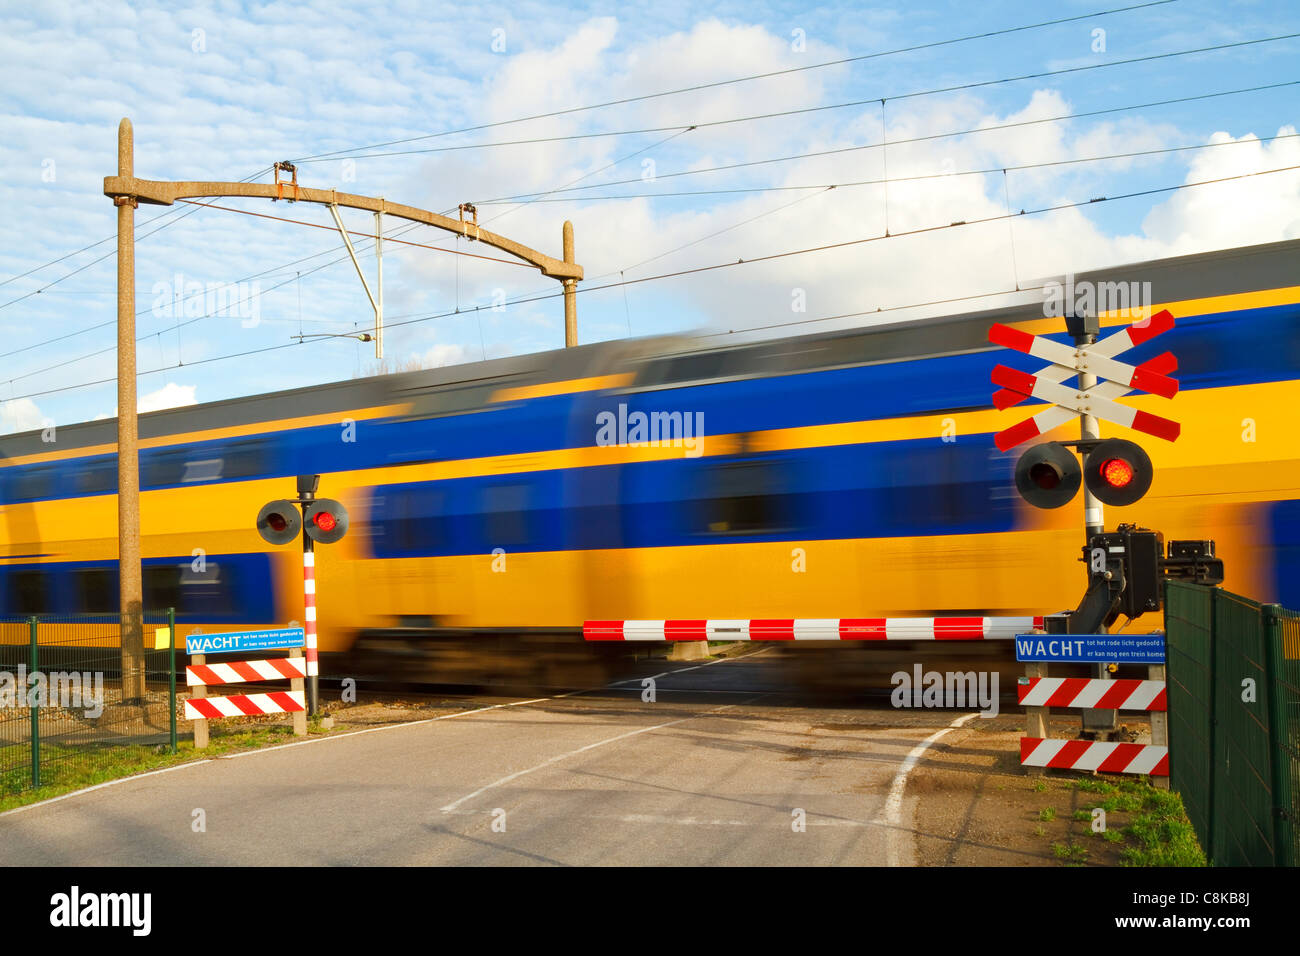 Dutch yellow and blue intercity high speed train passing a railway crossing with the barrier down and flashing warning - Stock Image